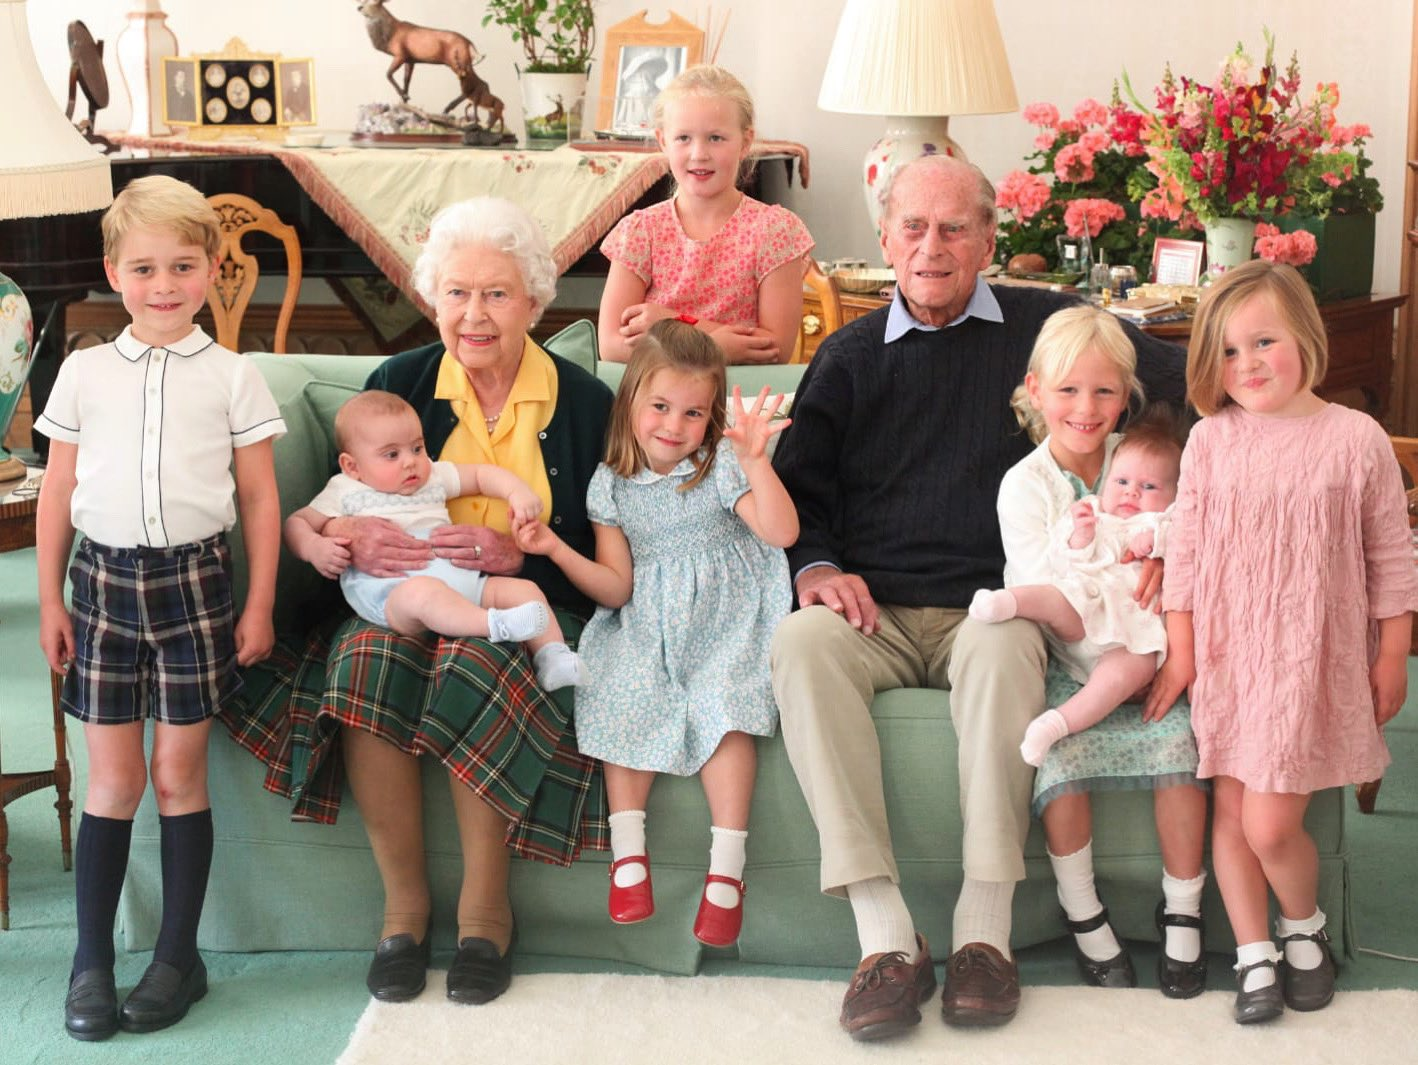 The Queen and The Prince Philip surrounded by their great grandchildren